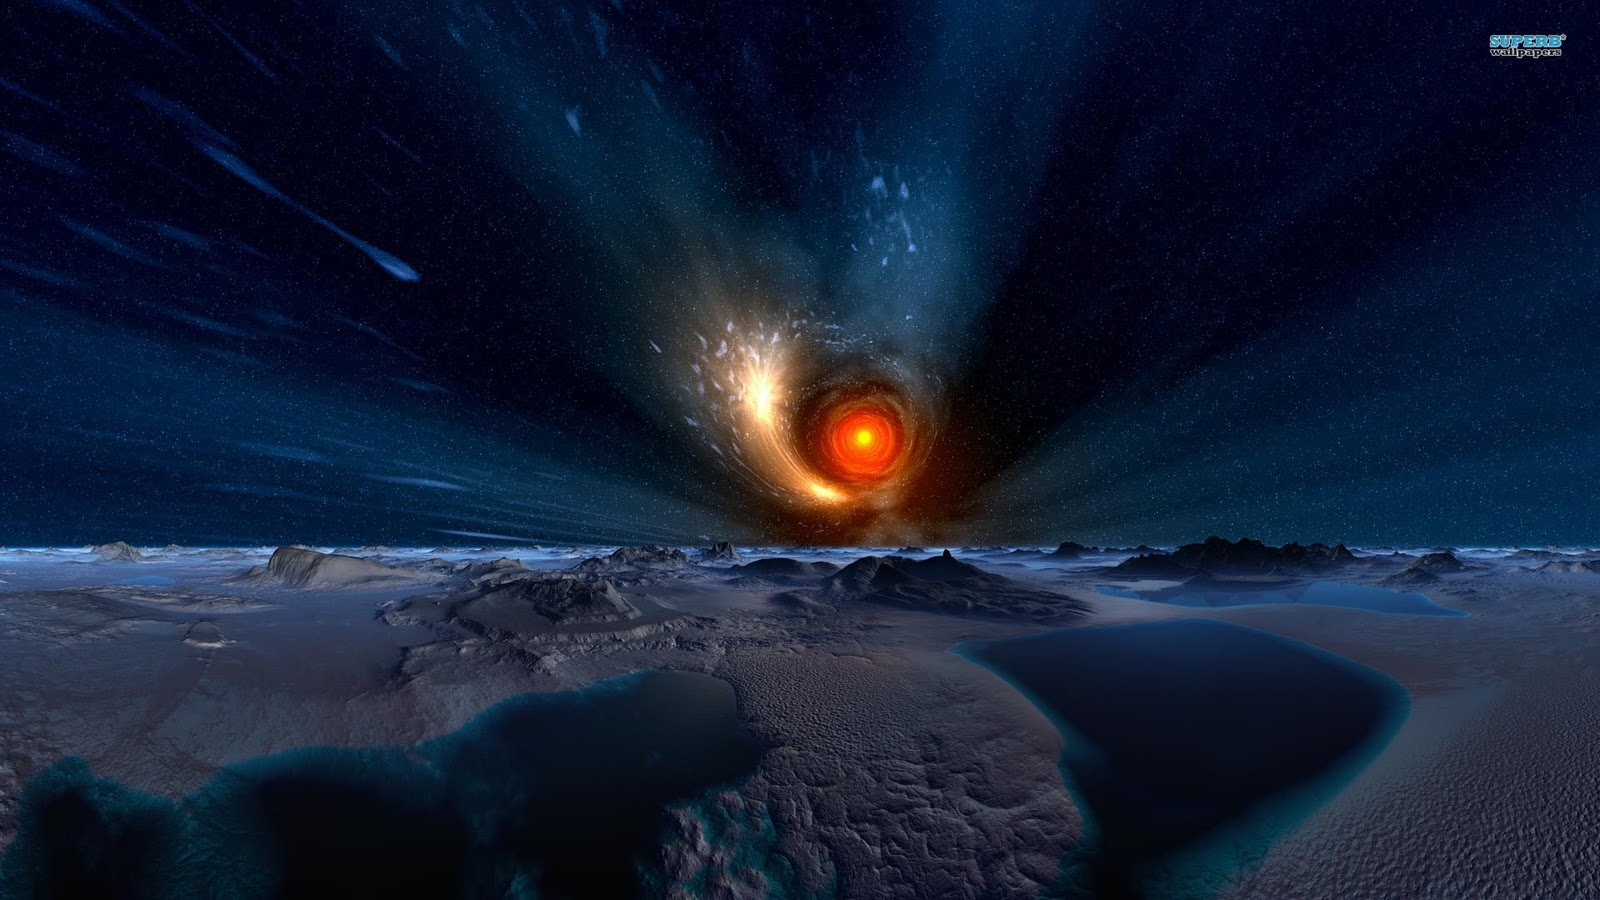 Black hole wallpaper moving wallpapersafari - Black space wallpaper ...